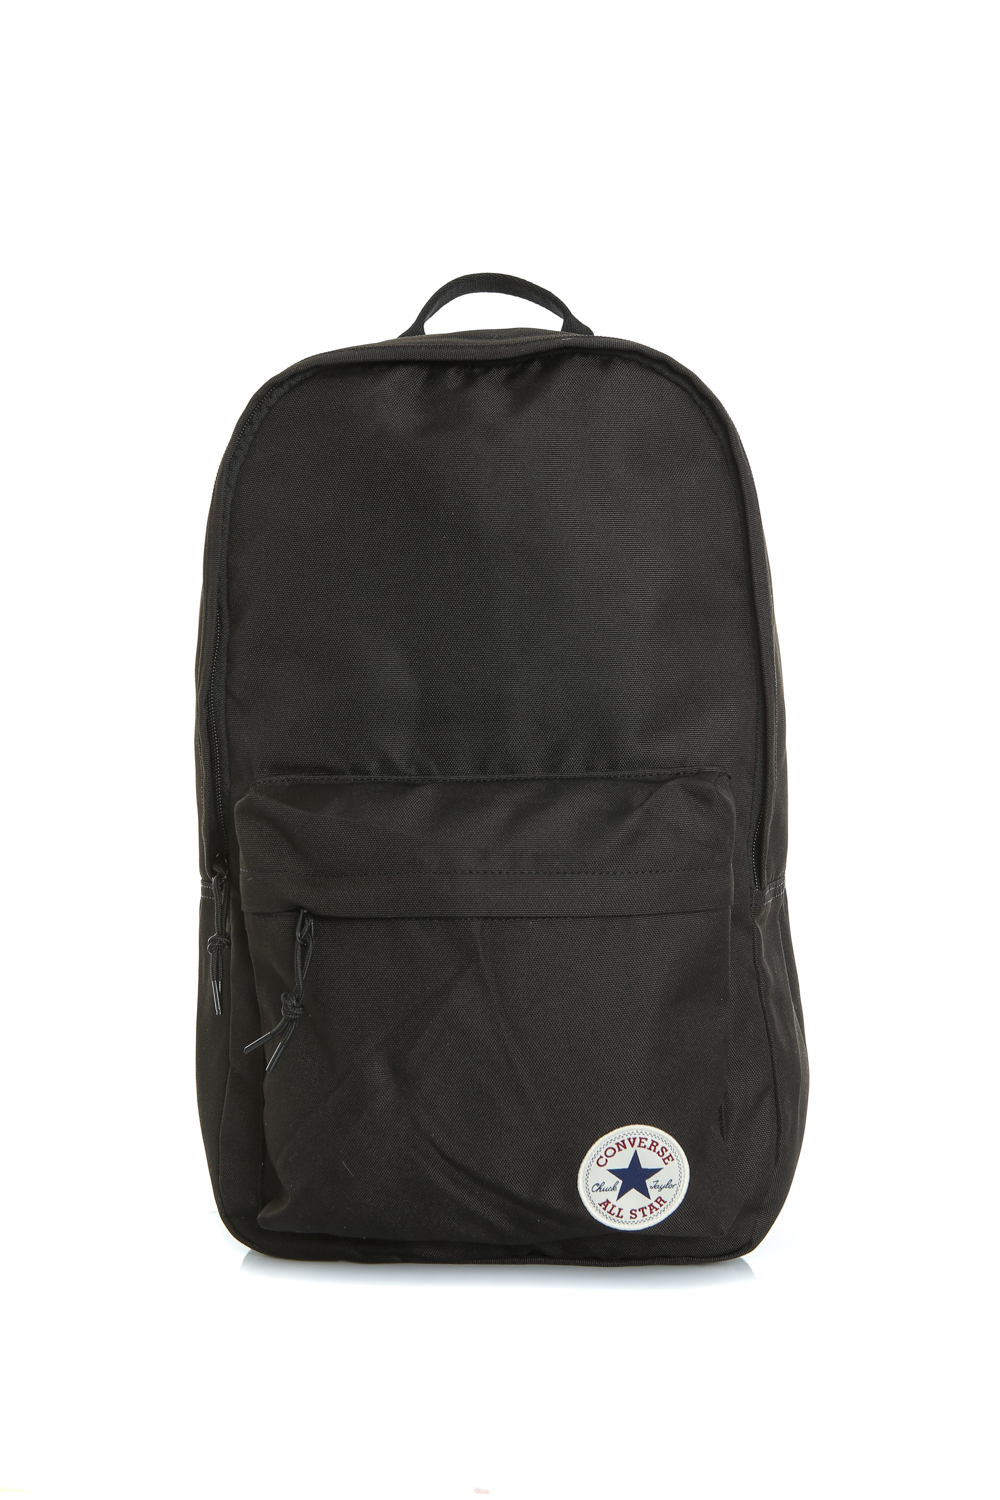 CONVERSE - Unisex τσάντα πλάτης Poly Backpack CONVERSE μαύρη